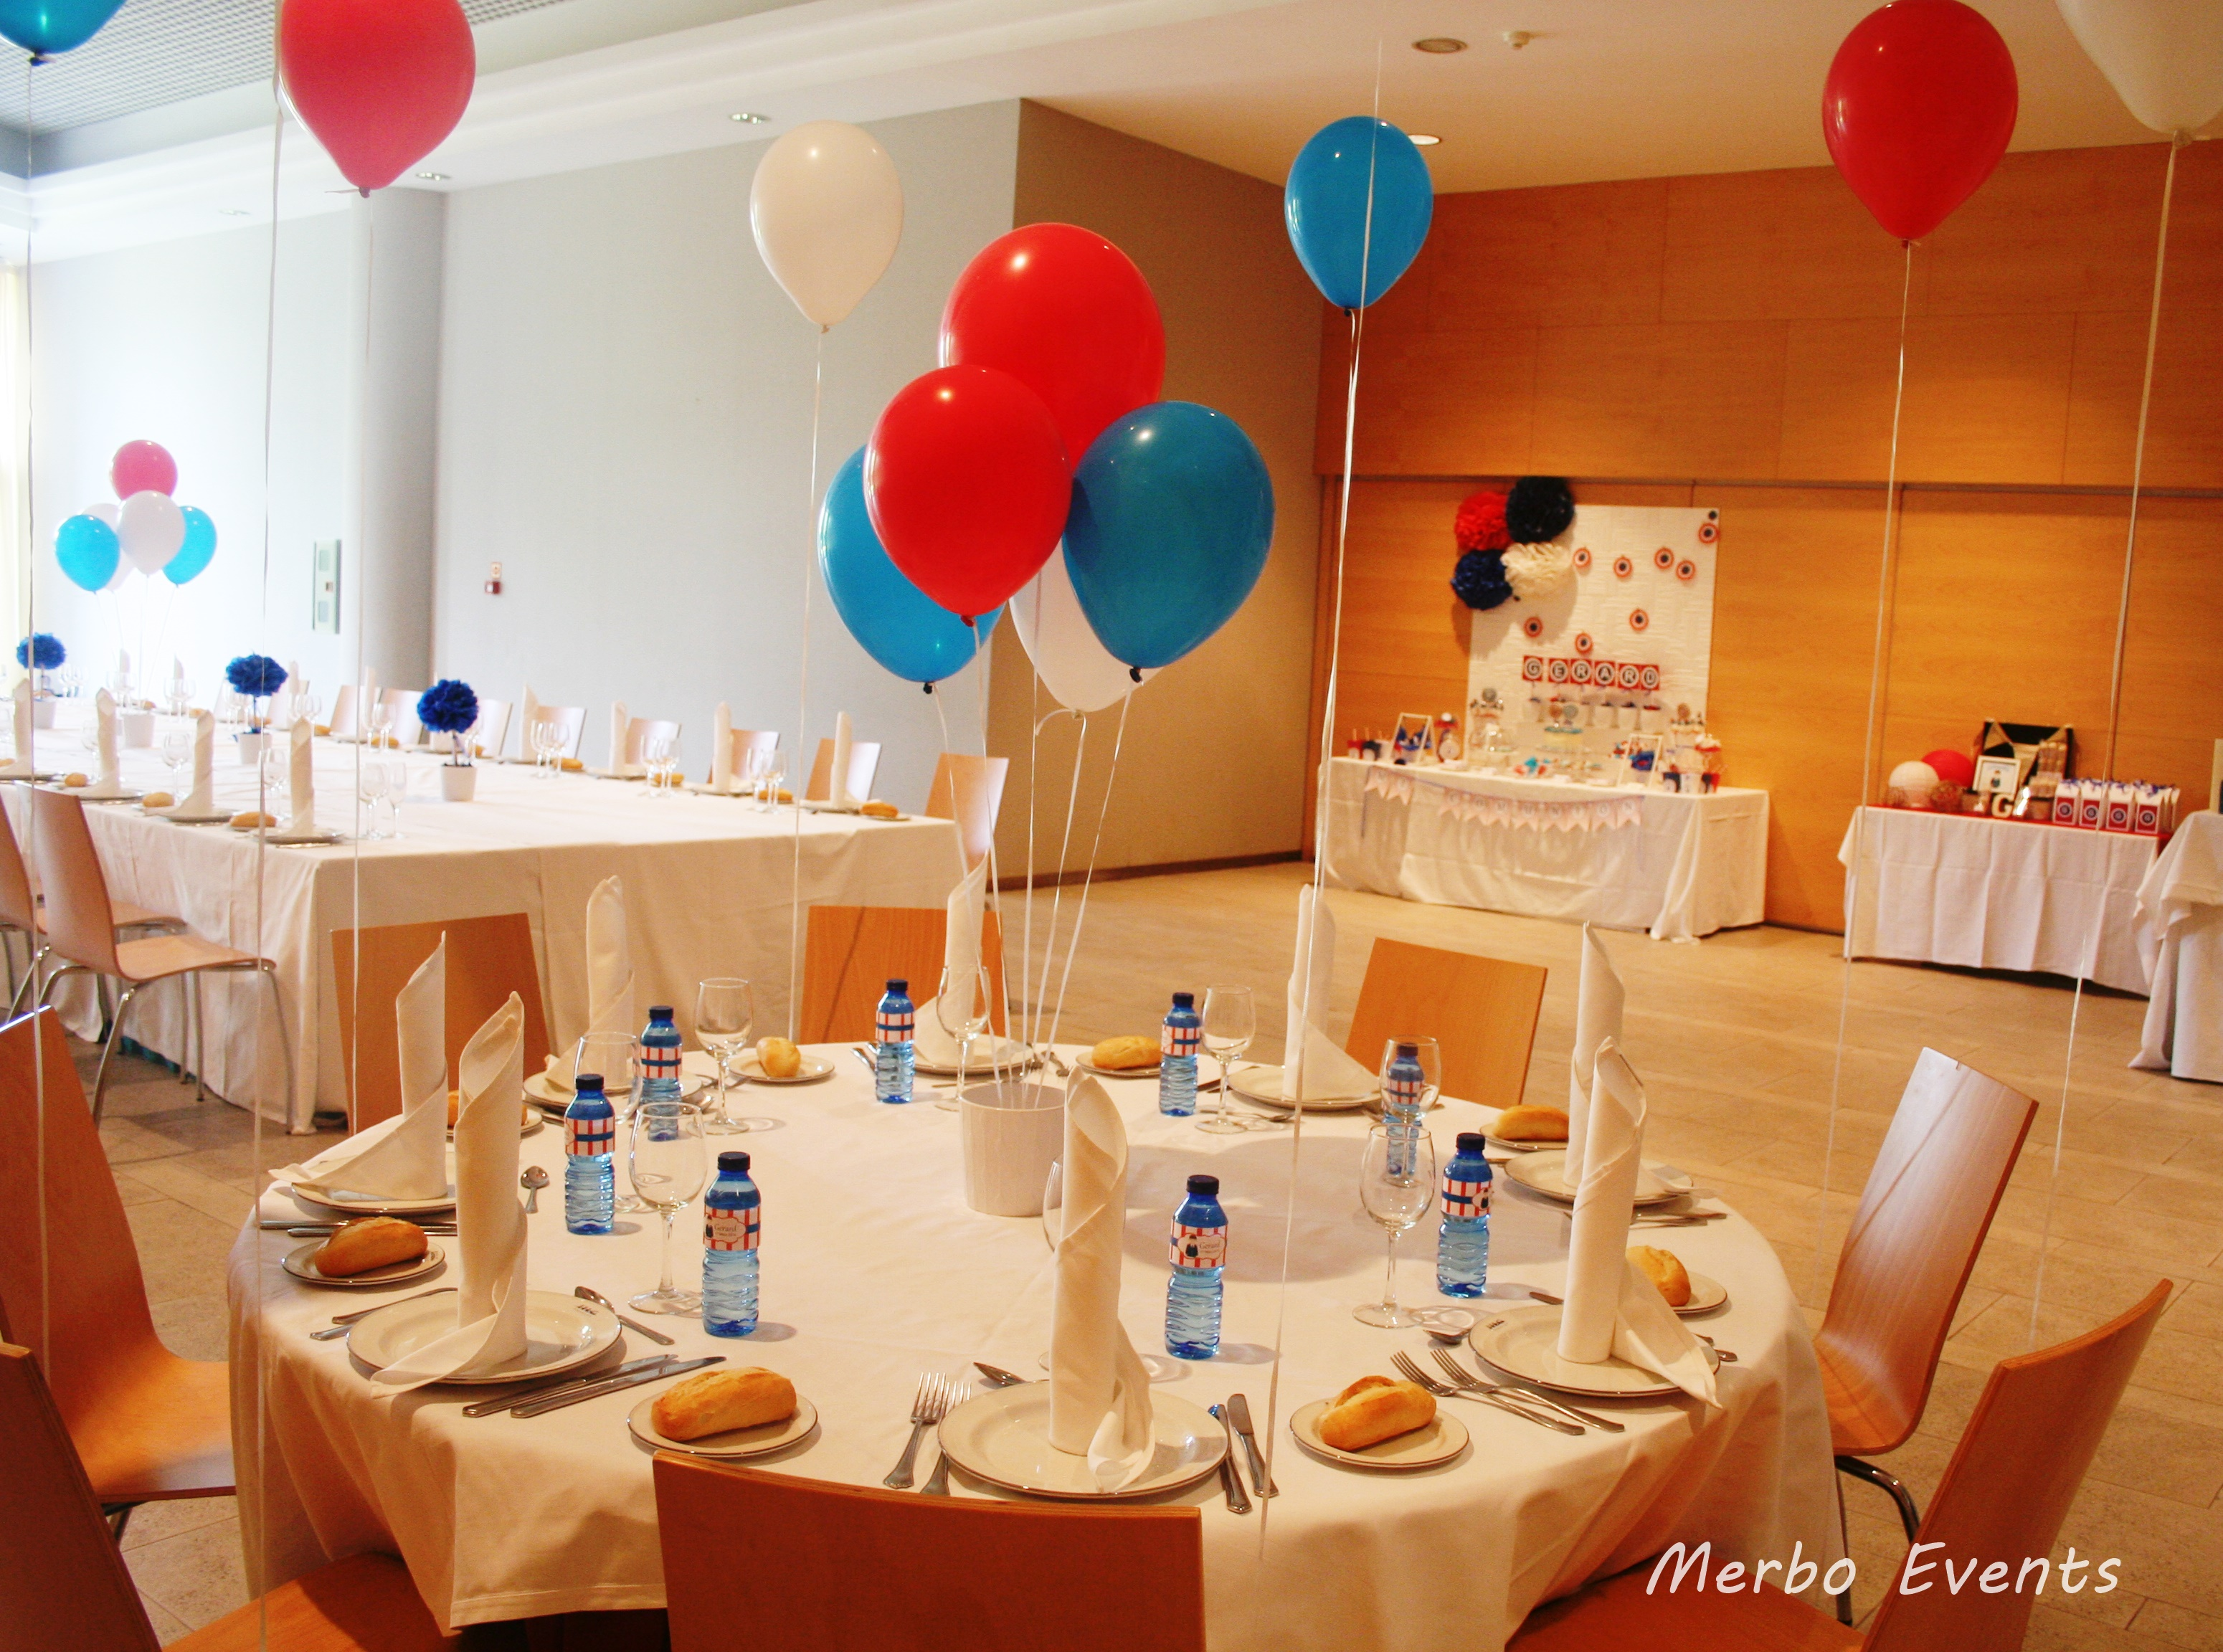 Comuniones merbo events - Decoracion con chuches para comuniones ...